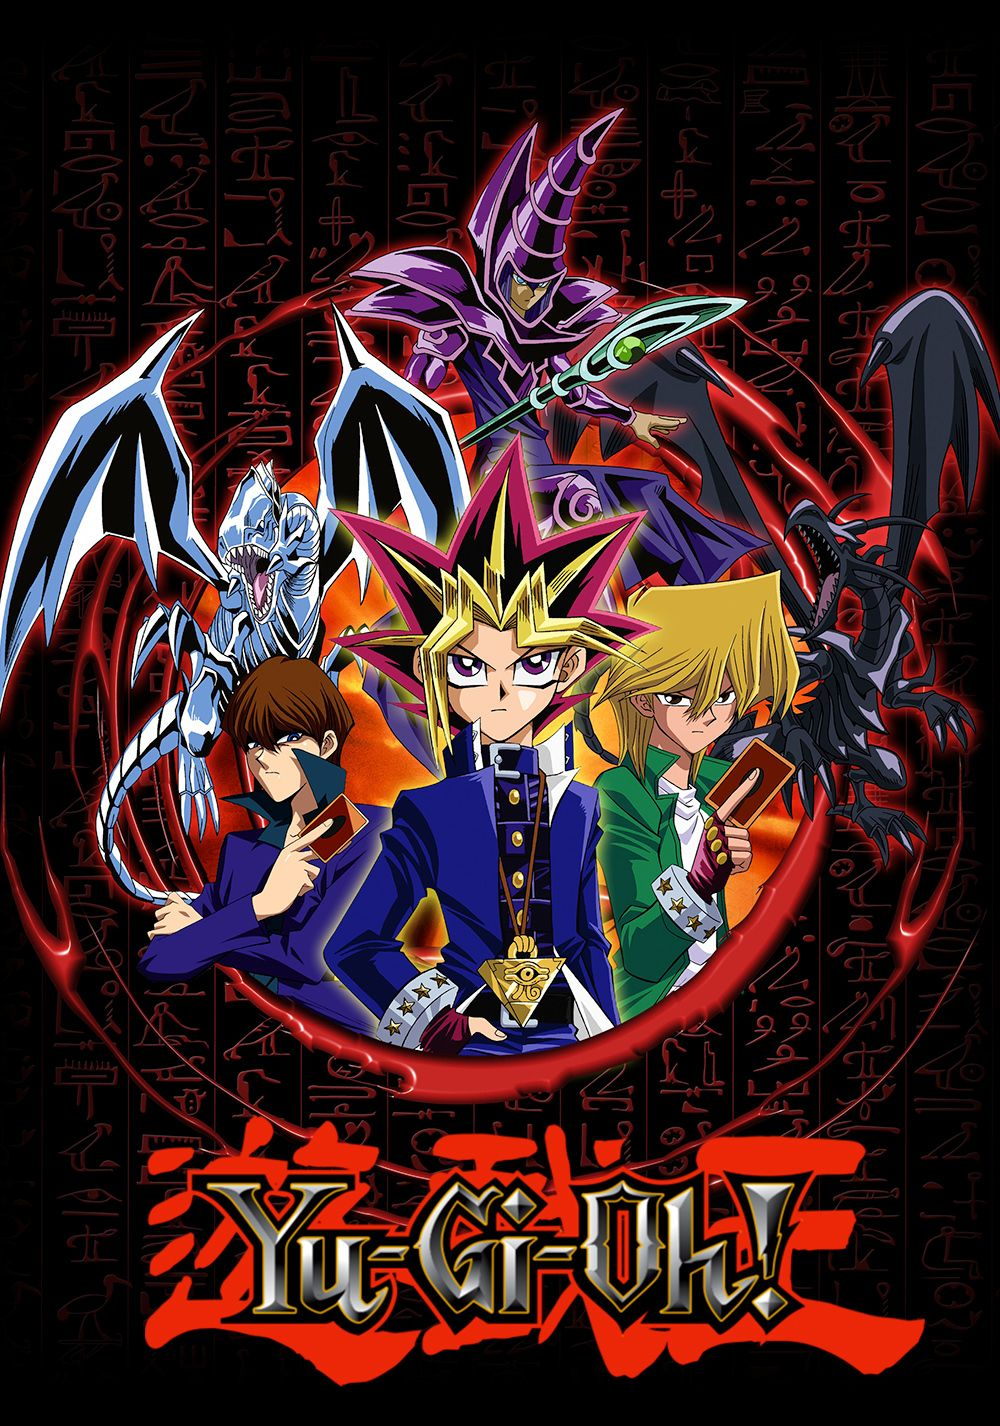 Pin by Chanel Aprahamian on YuGiOh! Anime, One piece